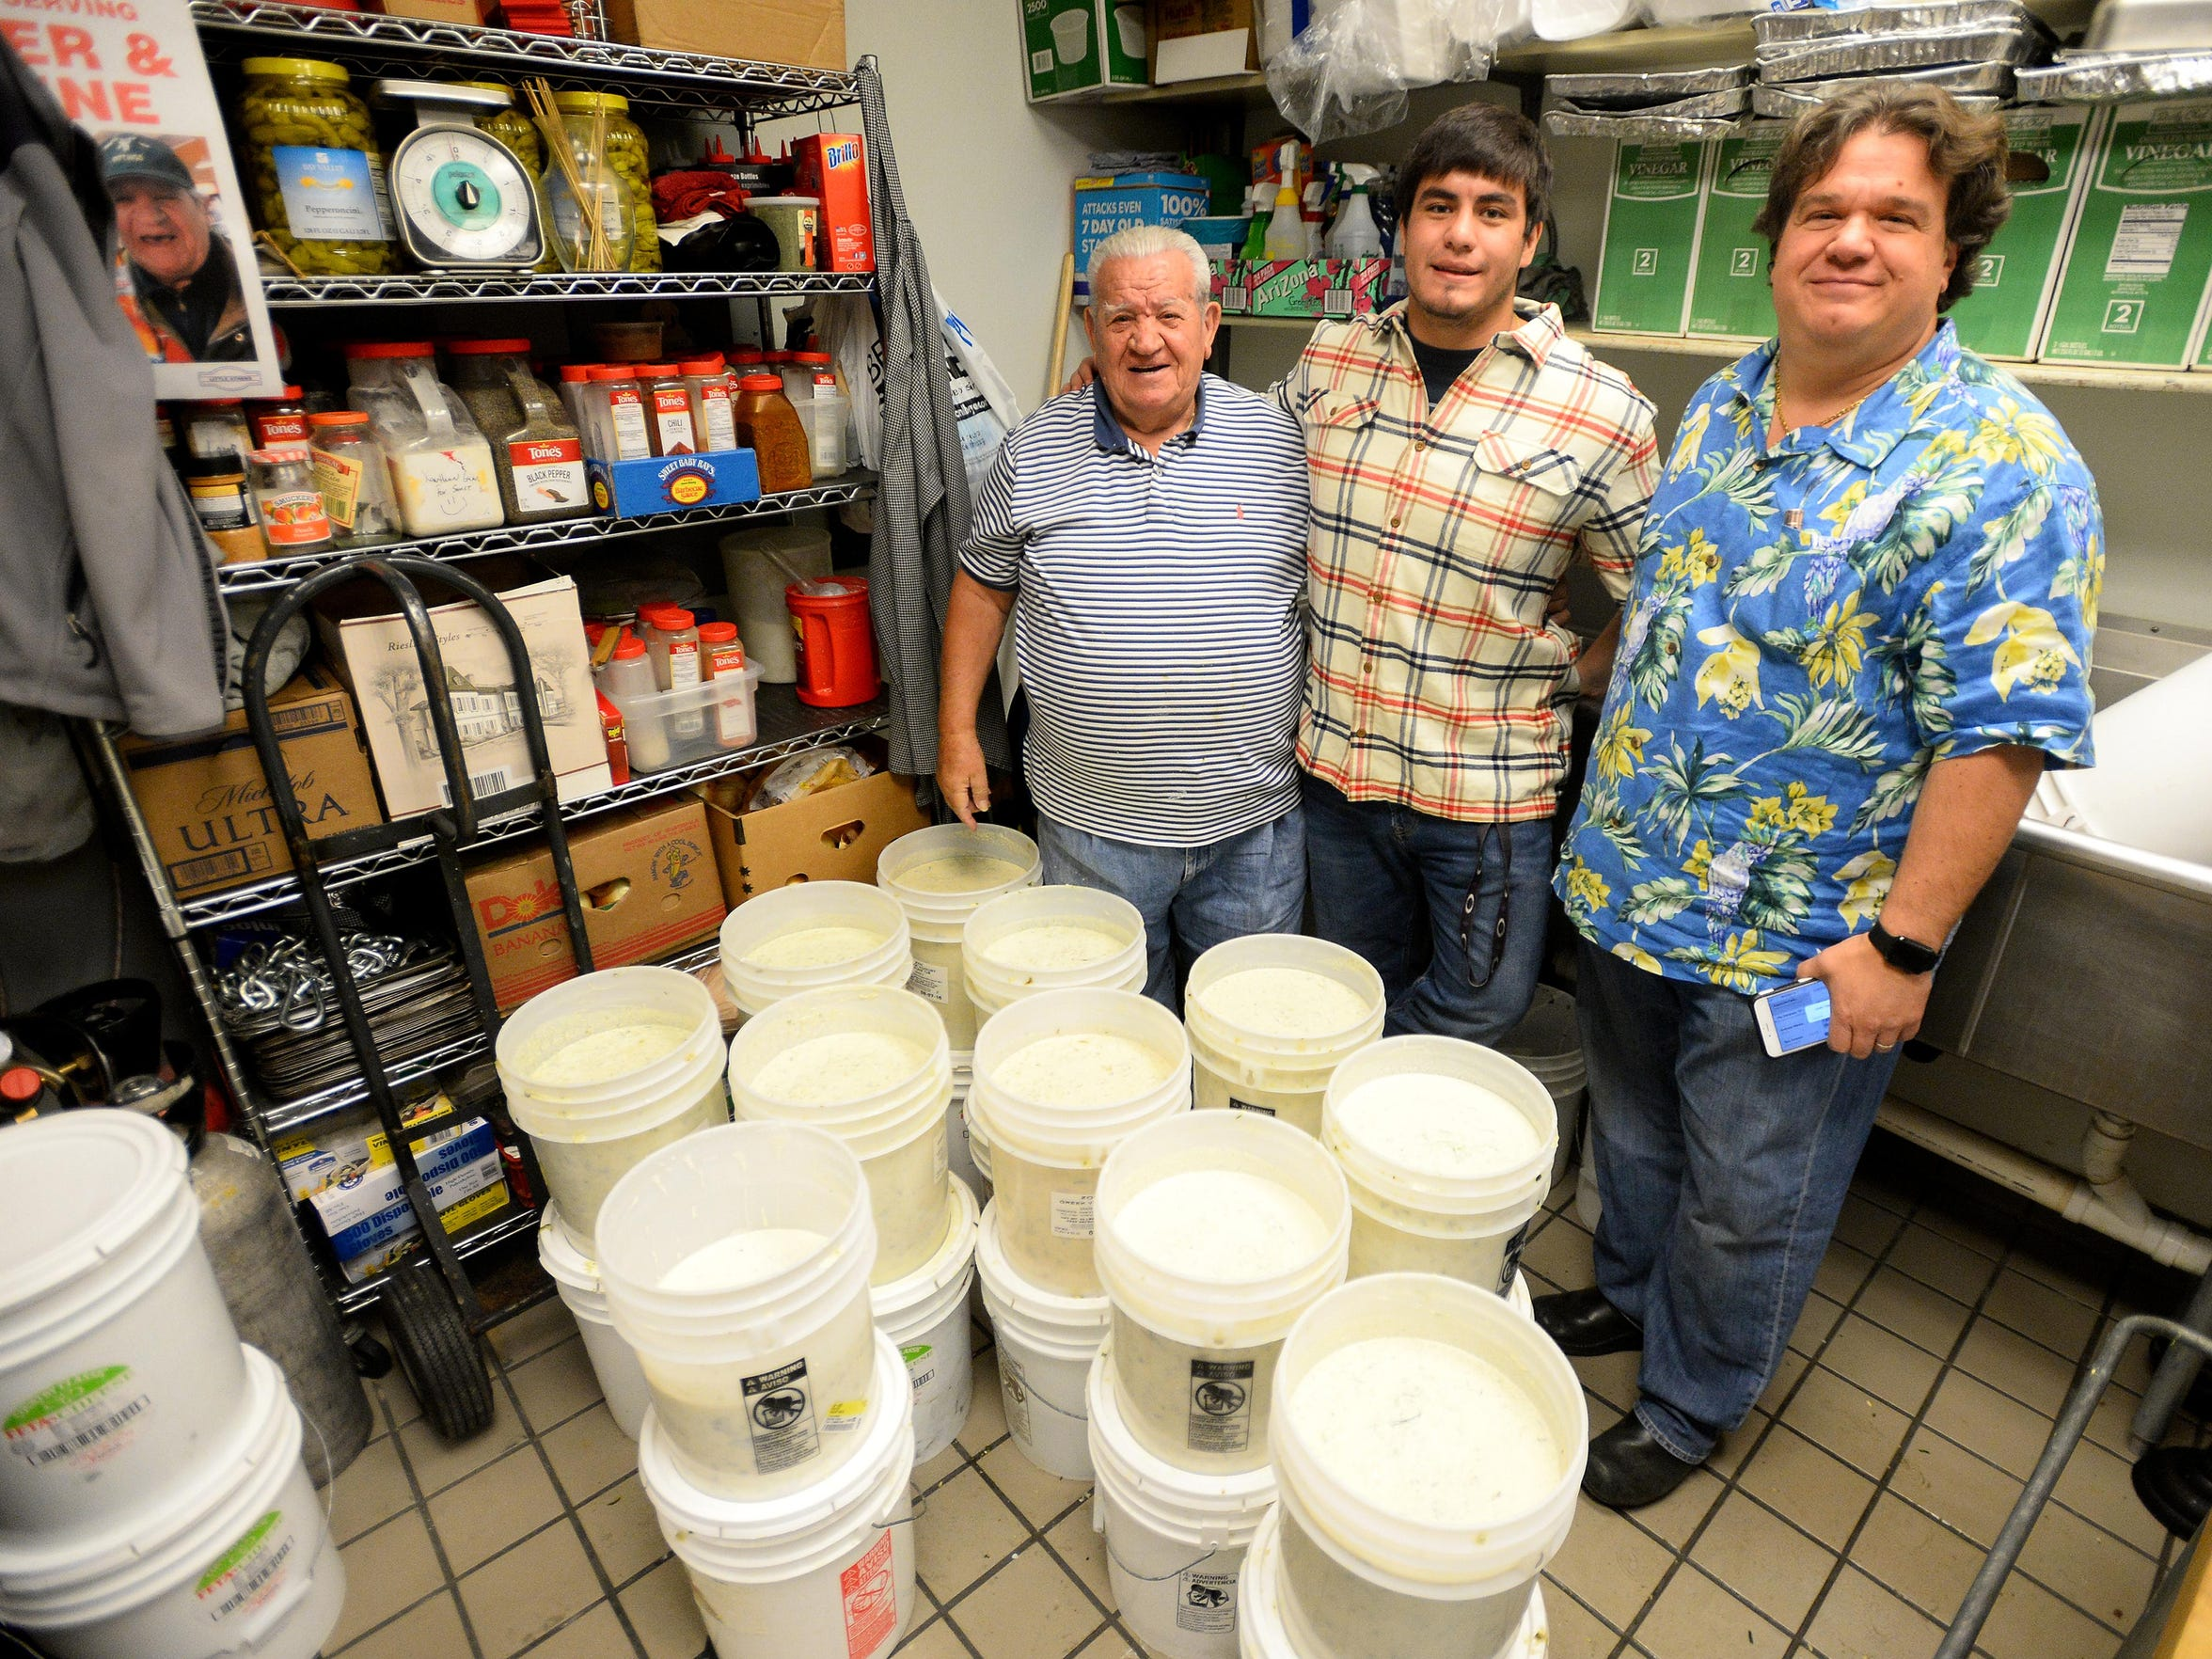 """Andreas """"Andy"""" Geranios, left, started Little Athens restaurant with his wife Aspasia in 1980. He still makes the tzakziki sauce. His son Nick, right, manages the Holiday Village Mall shop now, while his grandson Andreas, center, is pushing effort to add a retro speakeasy bar."""